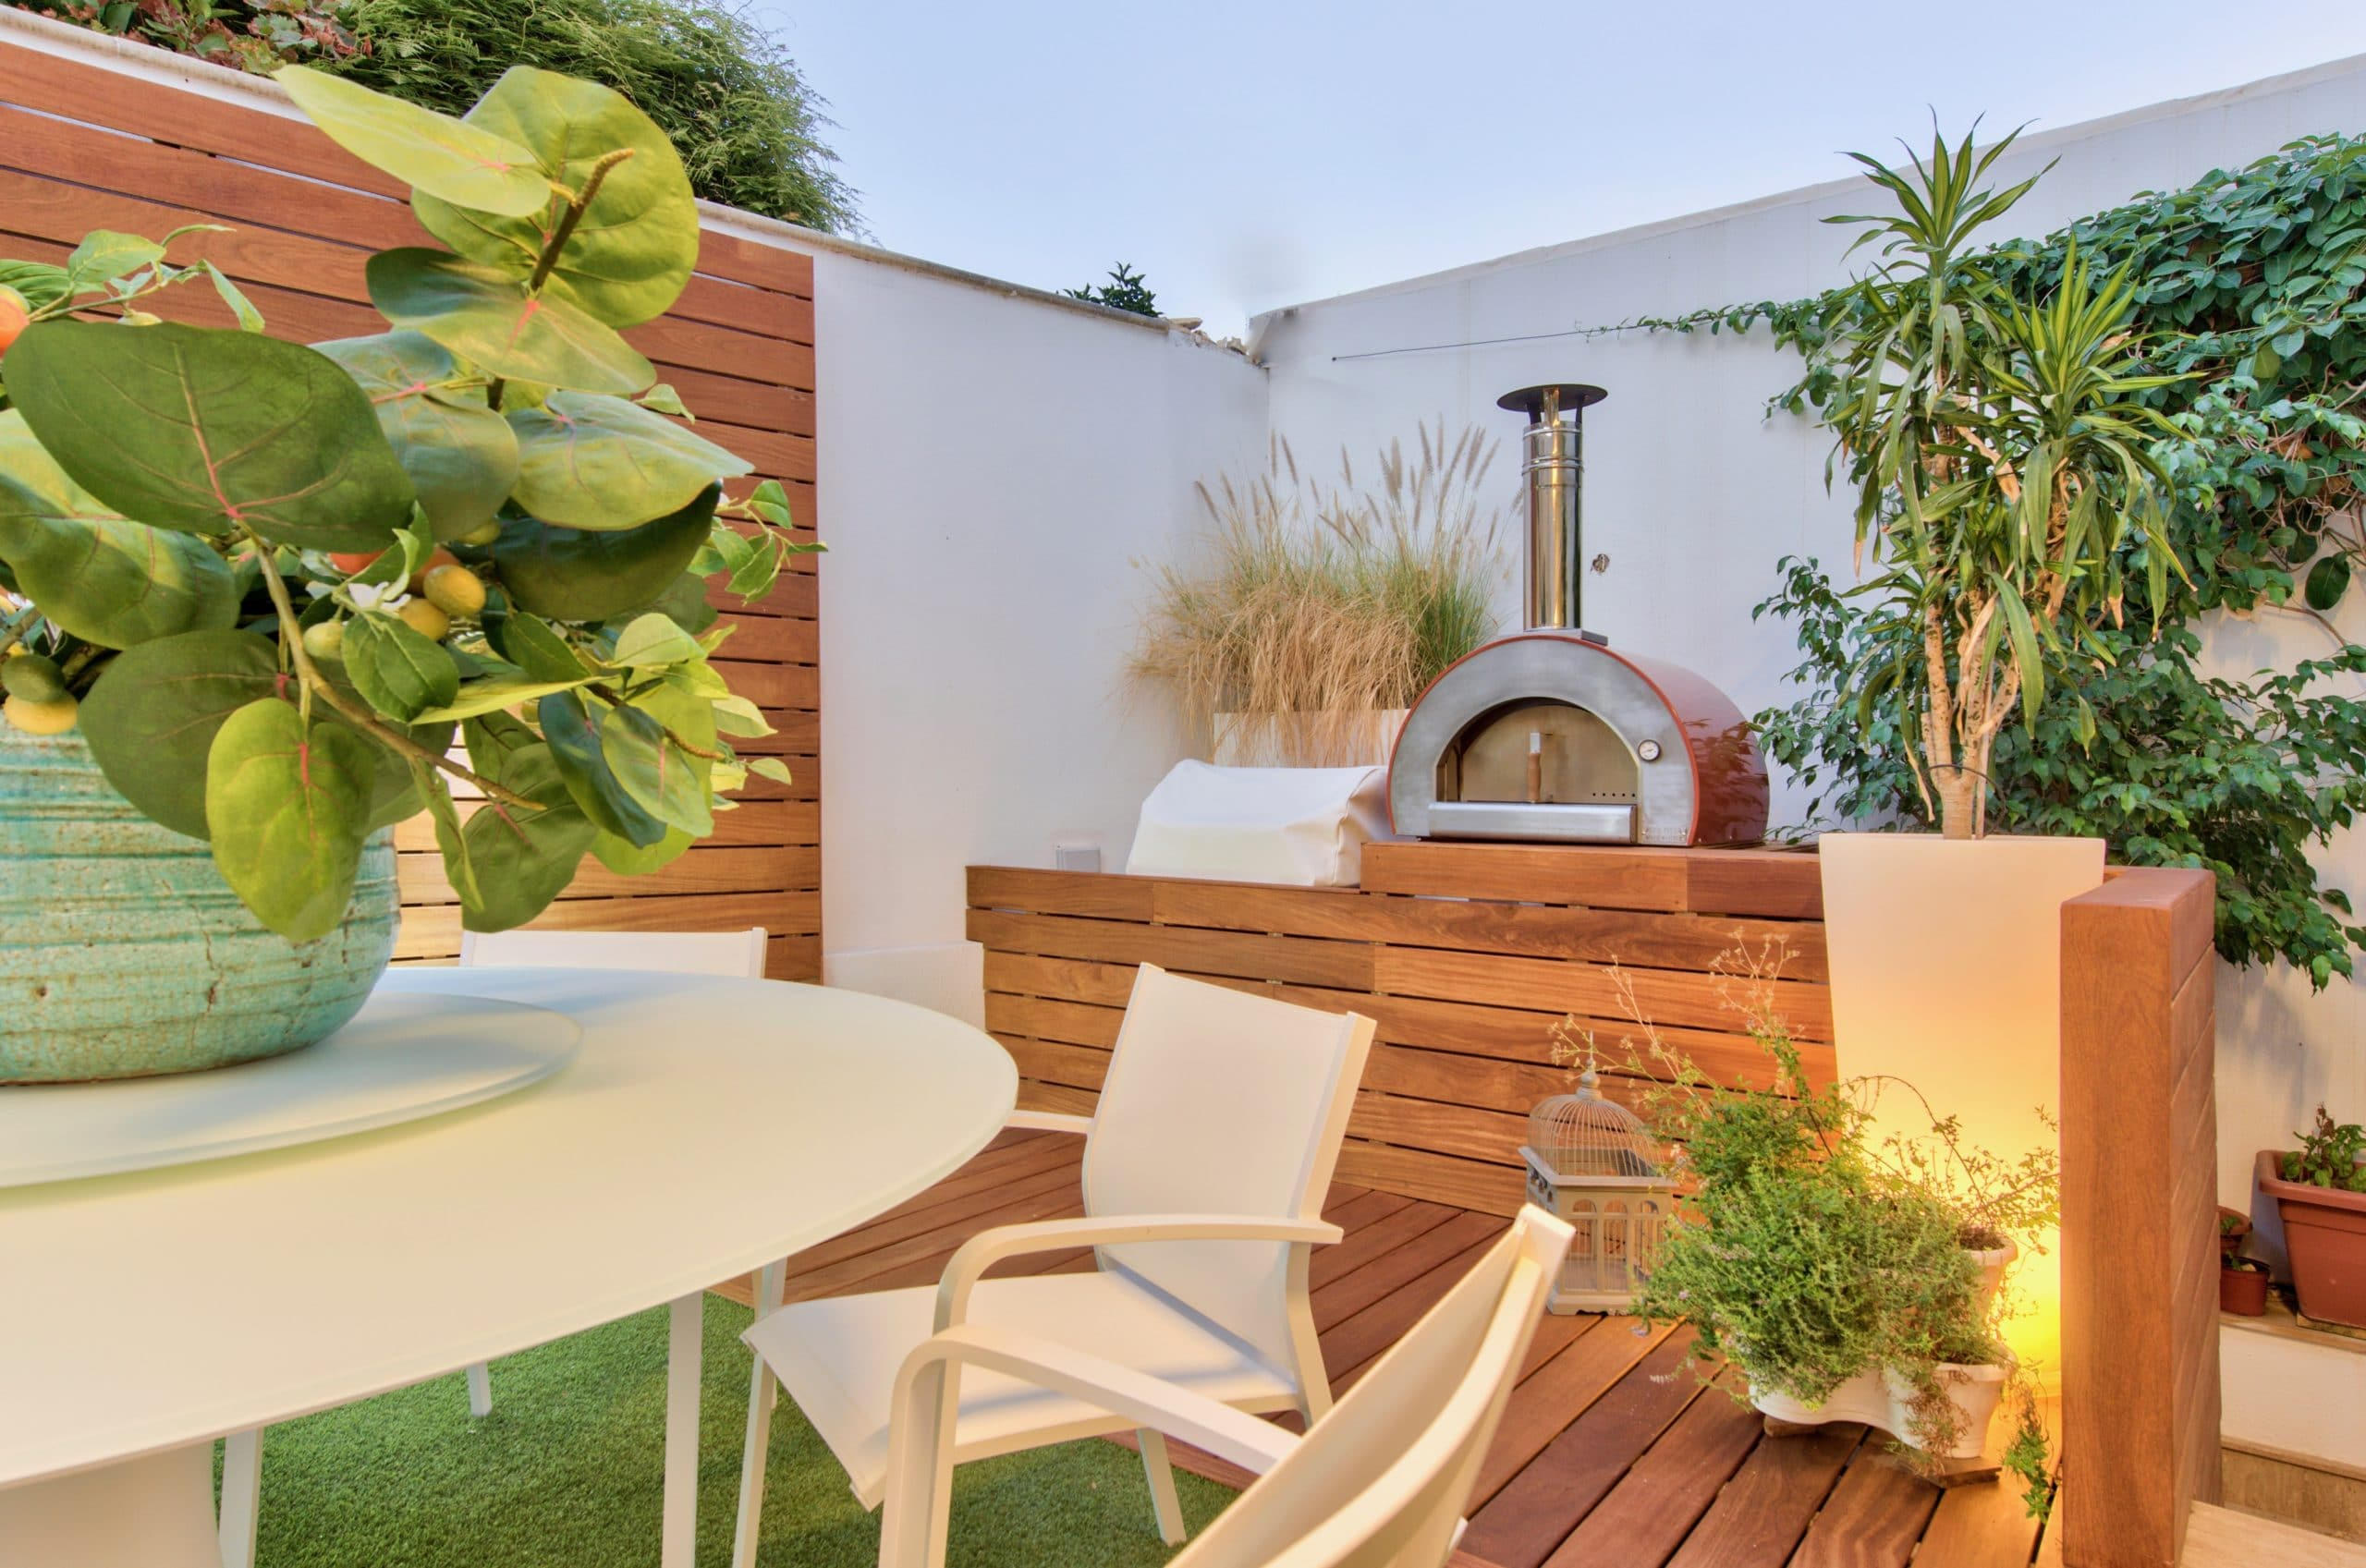 Garden – stove, sitting area, plants, landscaping, decking